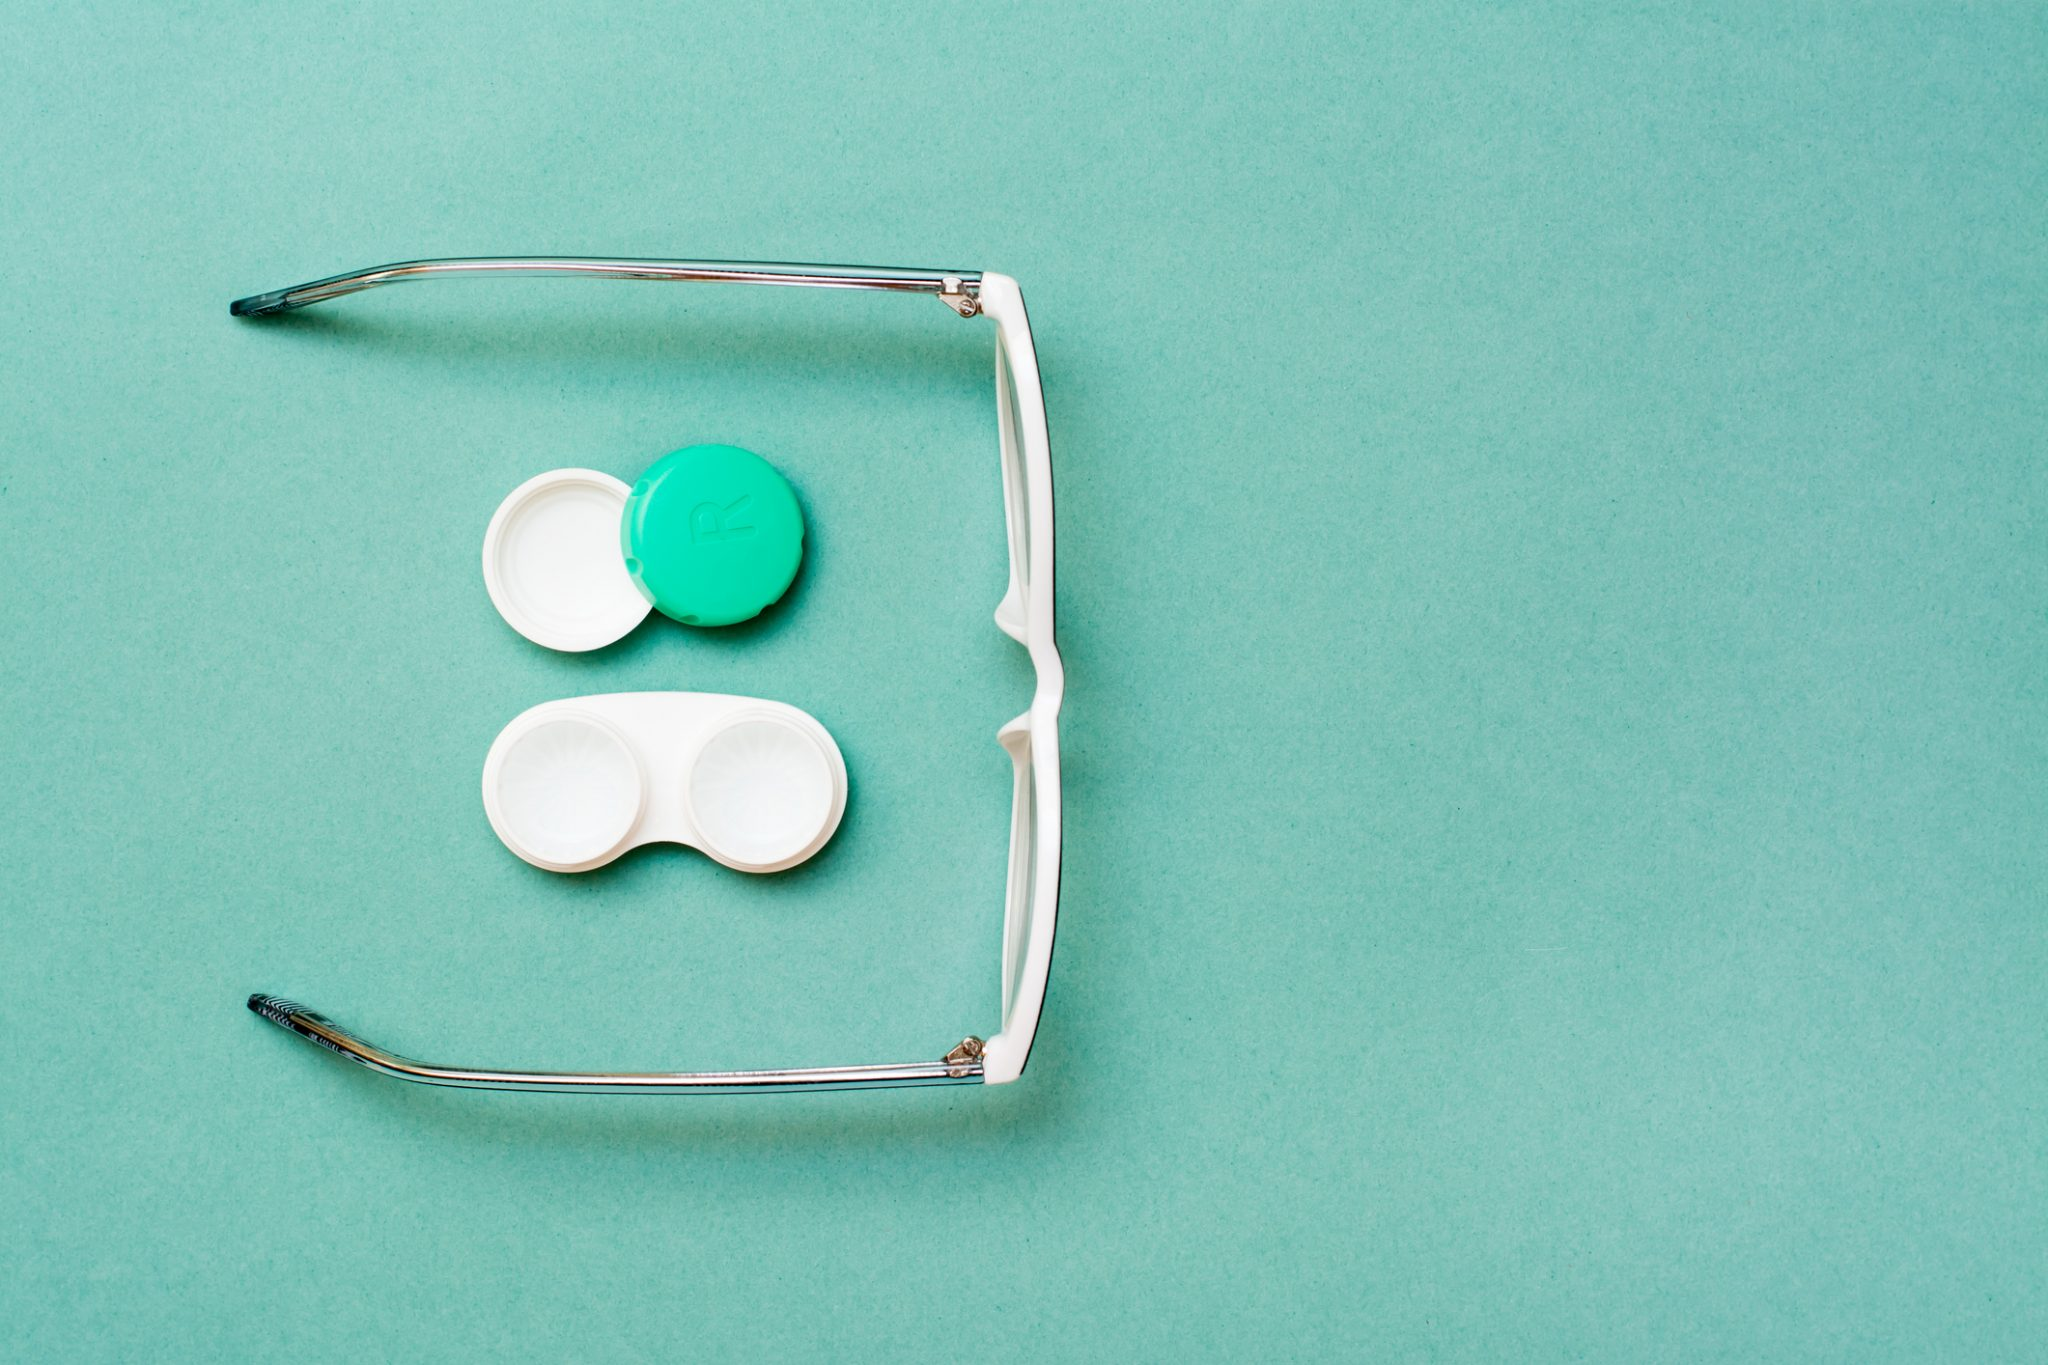 How to wear glasses and contact lenses in a more eco-friendly way